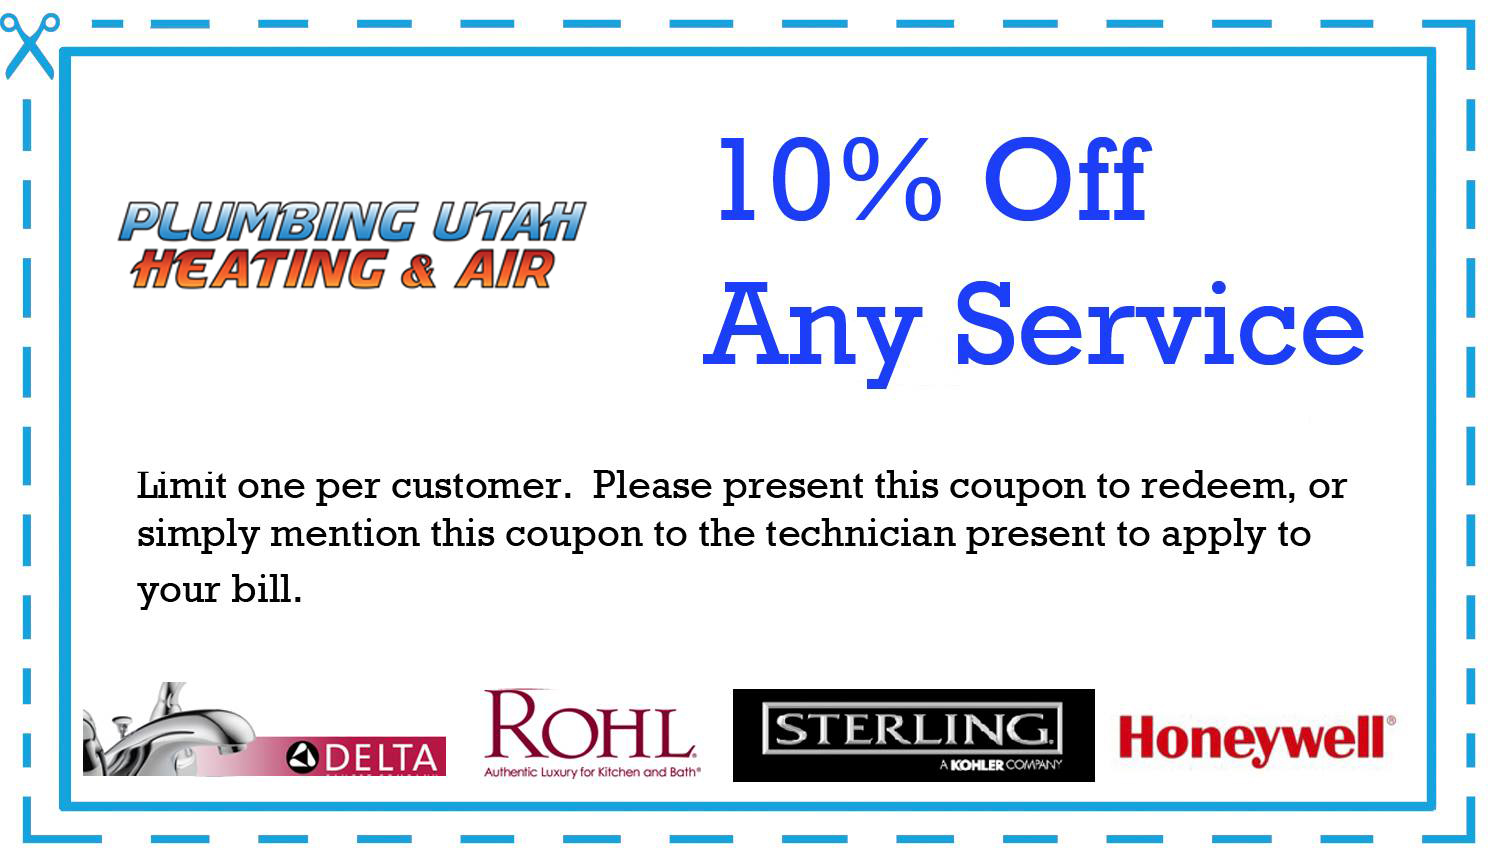 plumbing-utah-heating-air-plumbing-percent-coupon